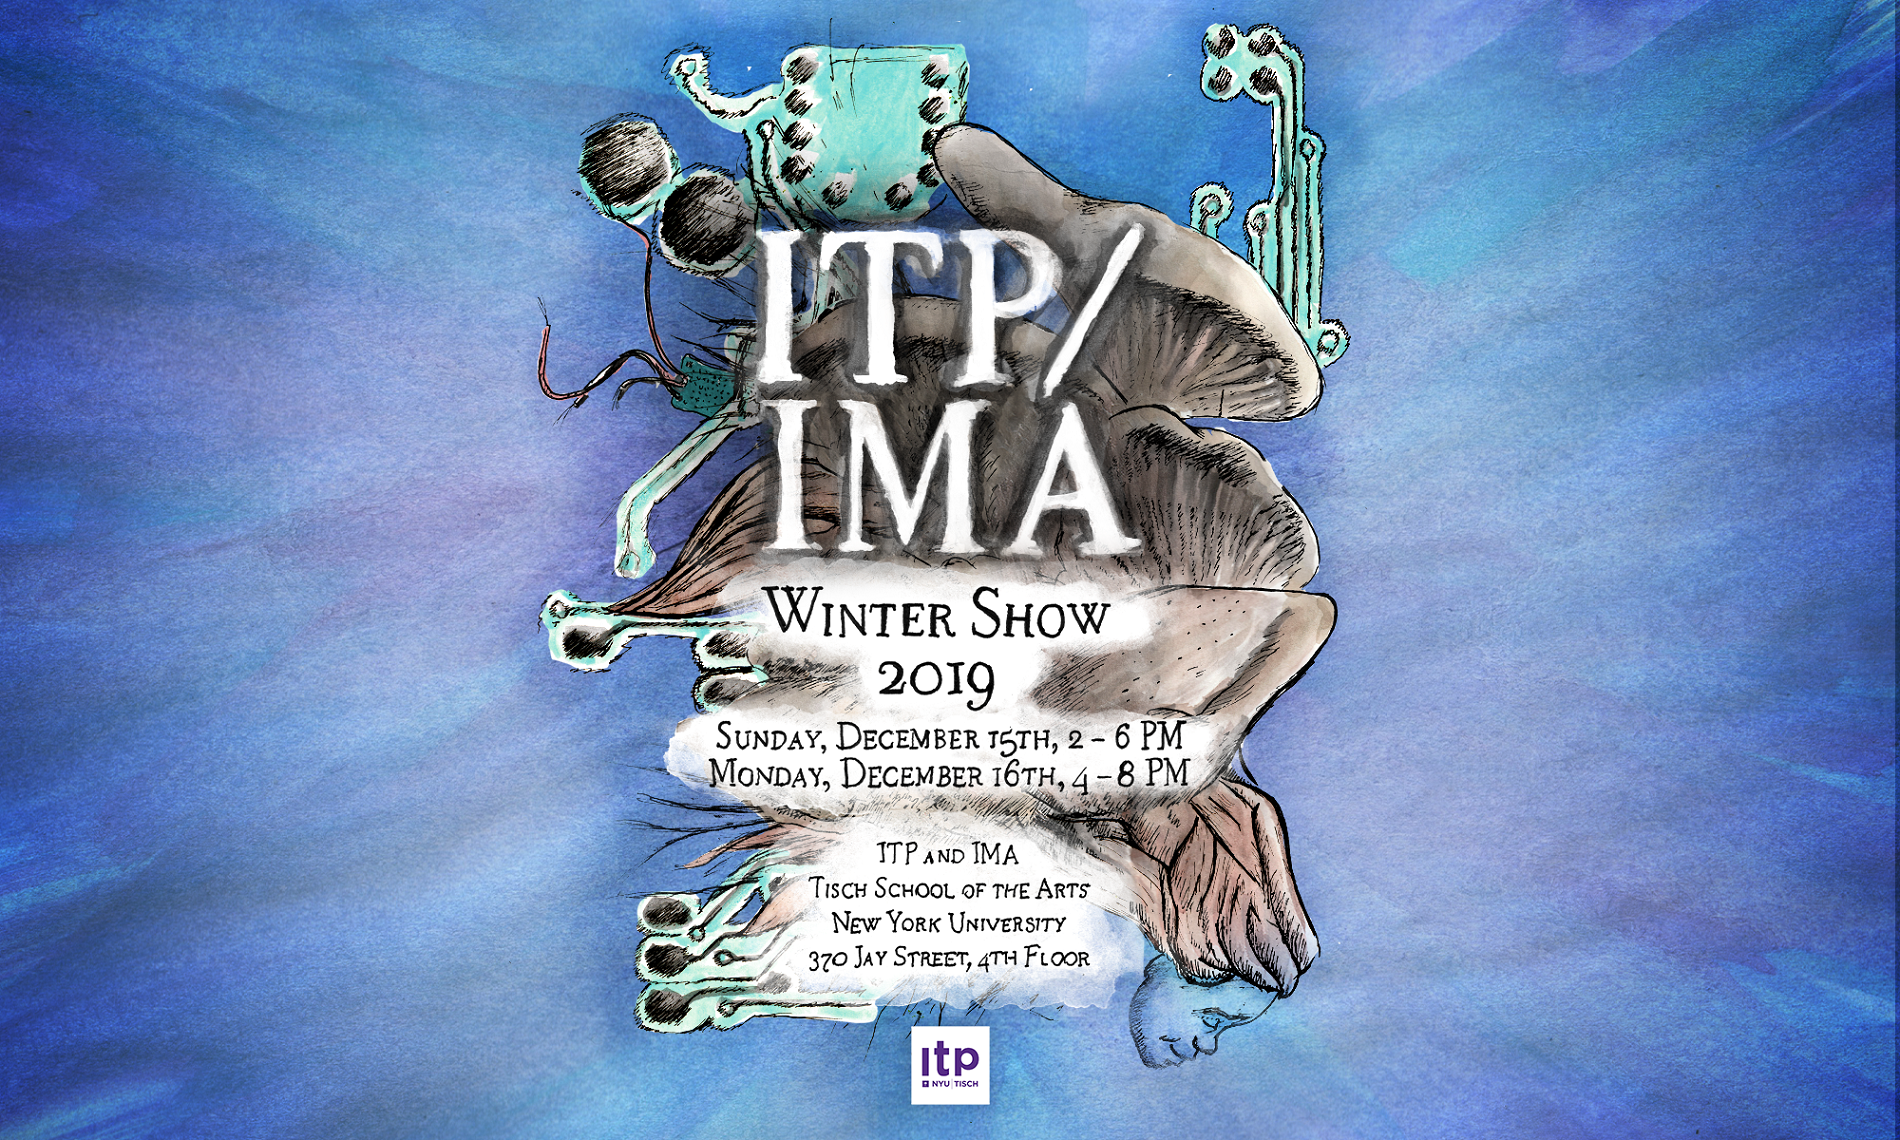 Image of ITP/IMA Winter Show 2019 Poster.